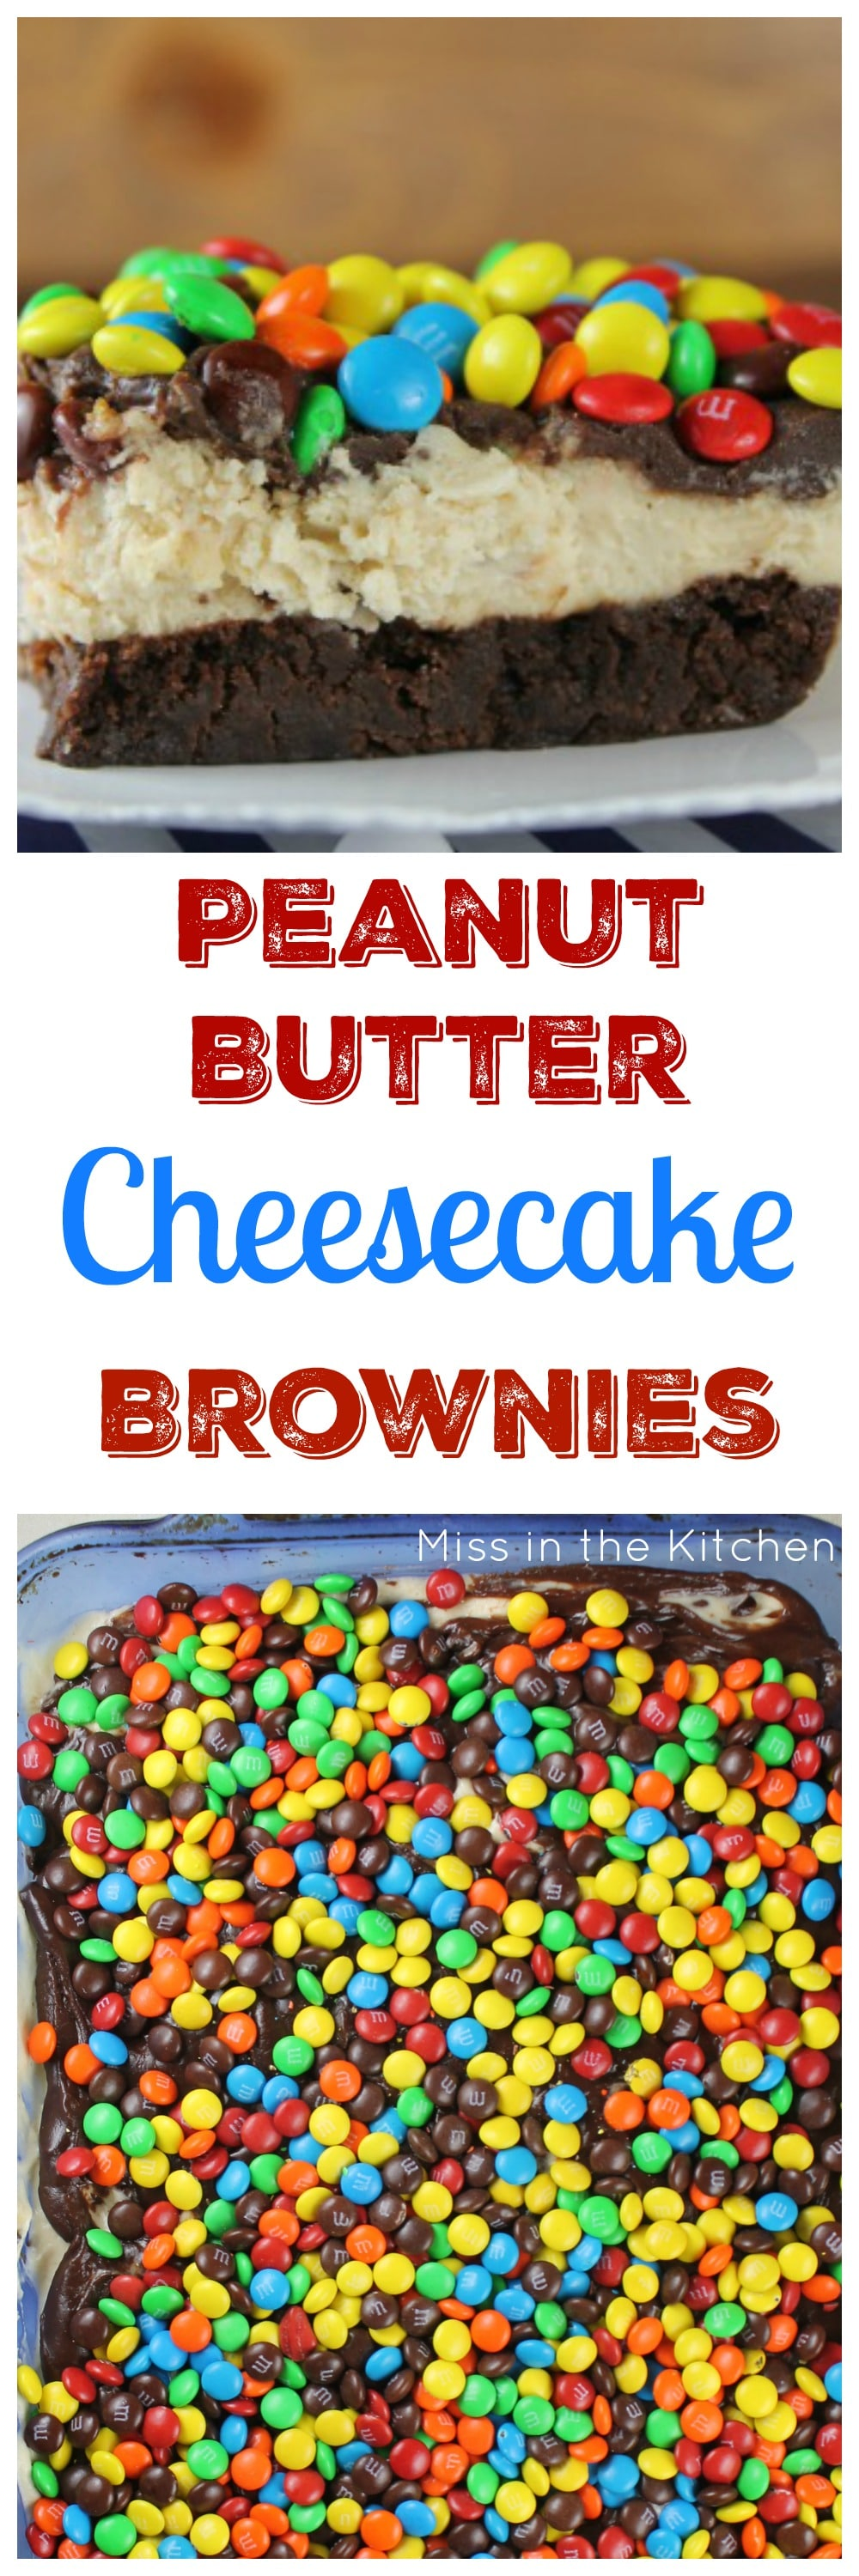 Peanut Butter Cheesecake Brownies Recipe found at MissintheKitchen.com